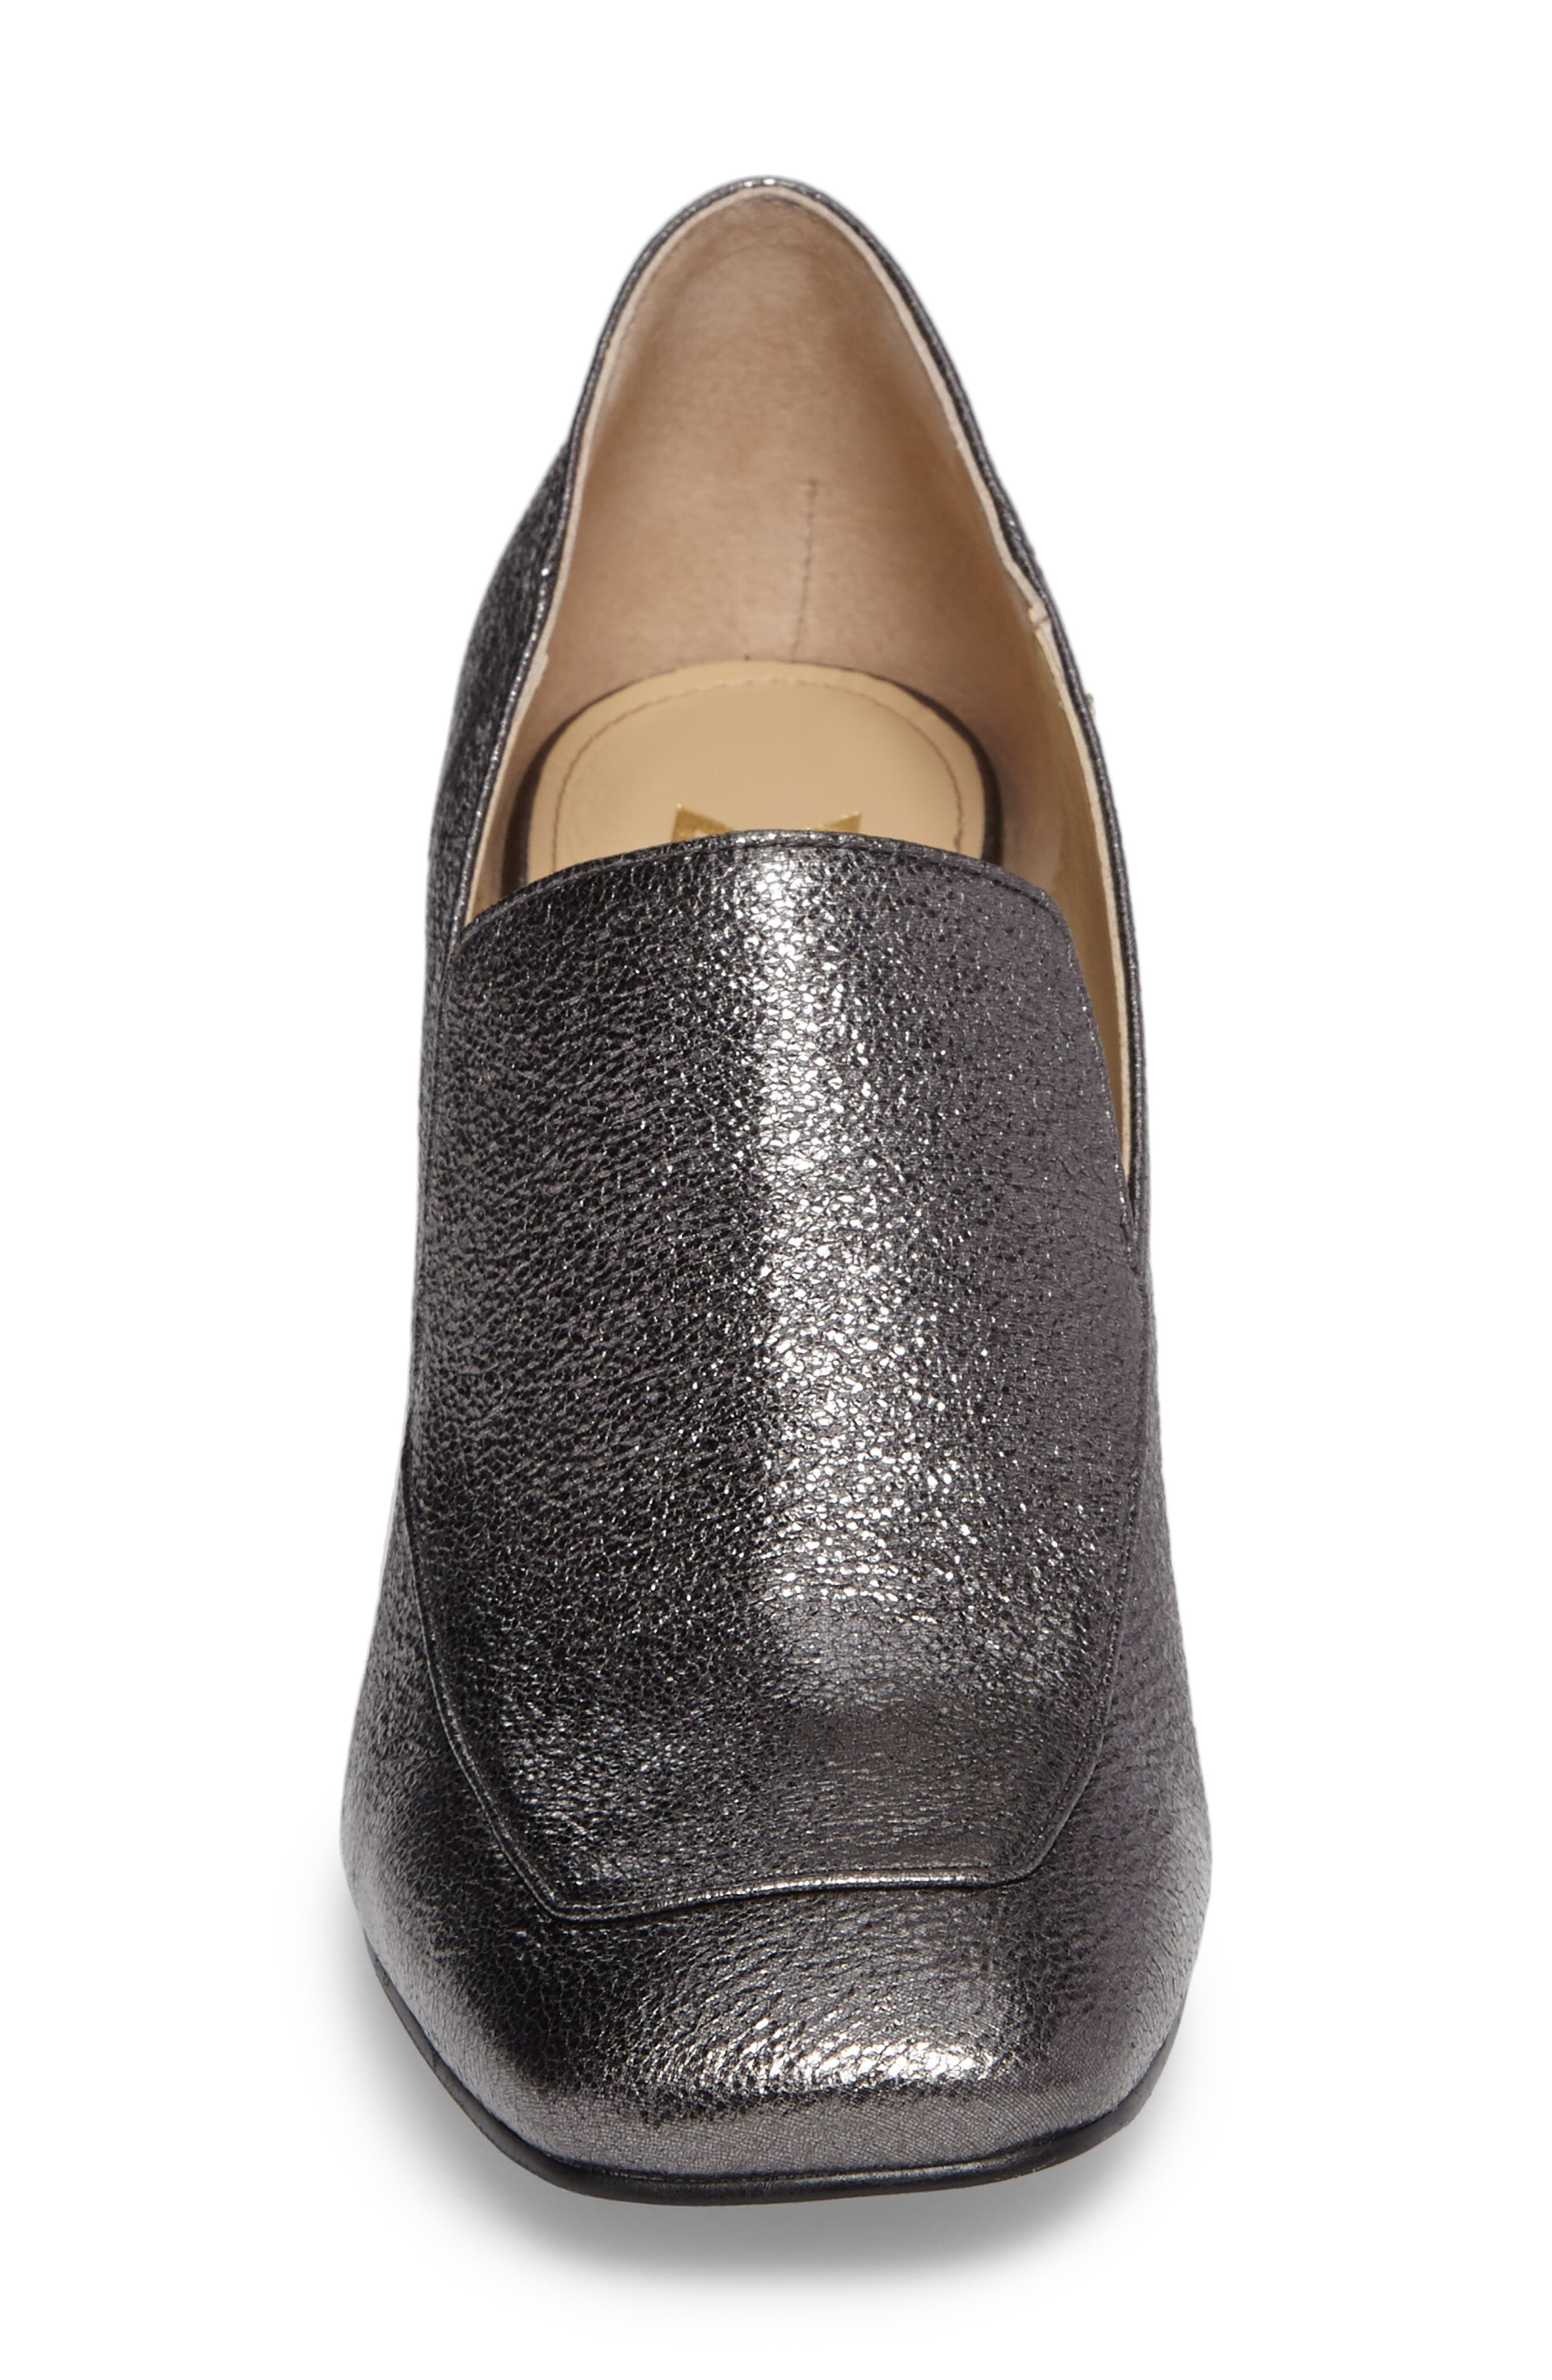 Marlo Loafer Pump,                             Alternate thumbnail 19, color,